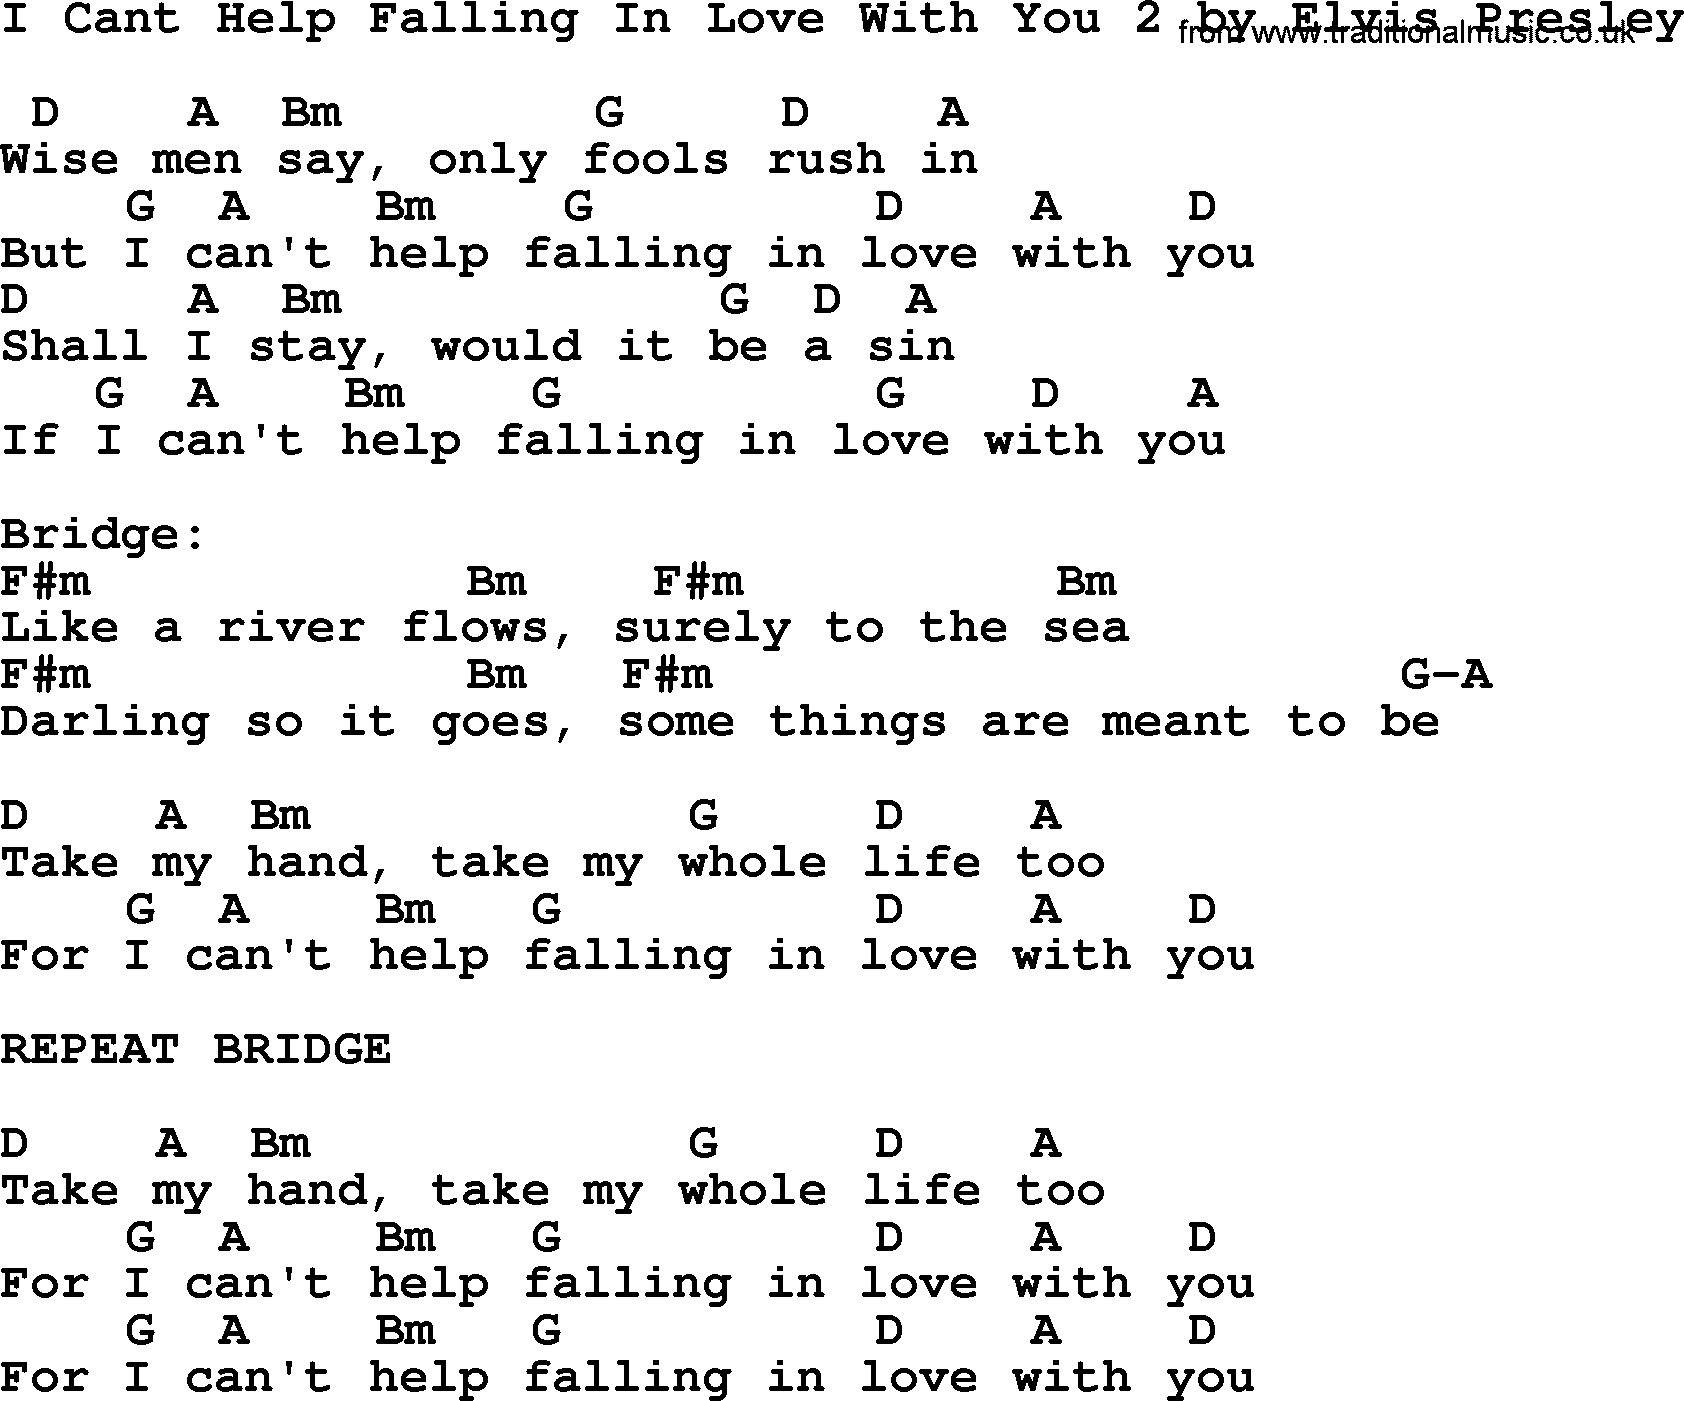 I Can T Help Falling In Love With You Chords I Cant Help Falling In Love With You 2 Elvis Presley Lyrics